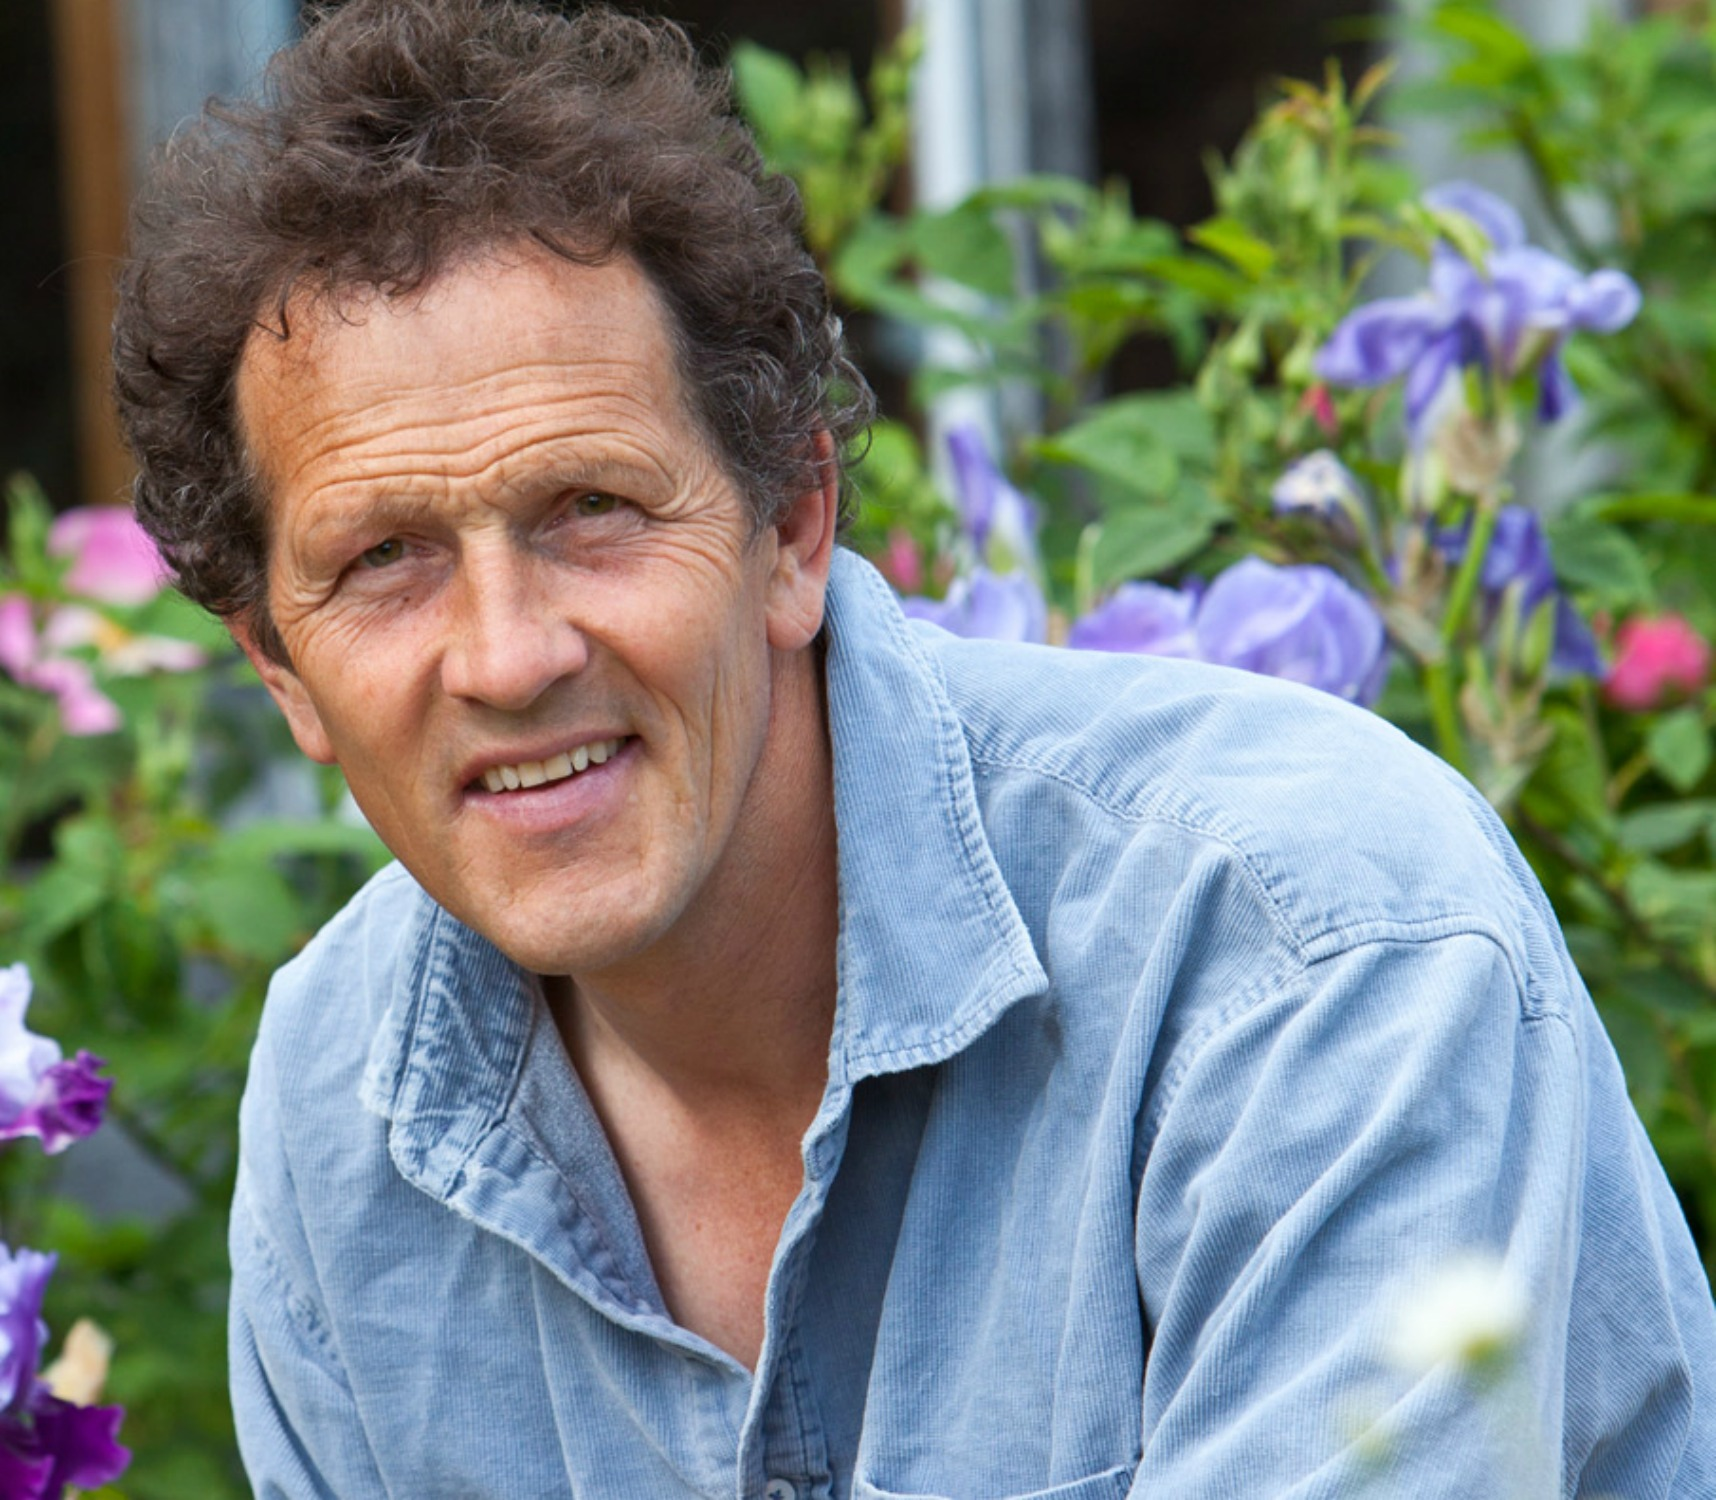 Gardeners' World 2017 – Episode 14 – jun 23, 2017